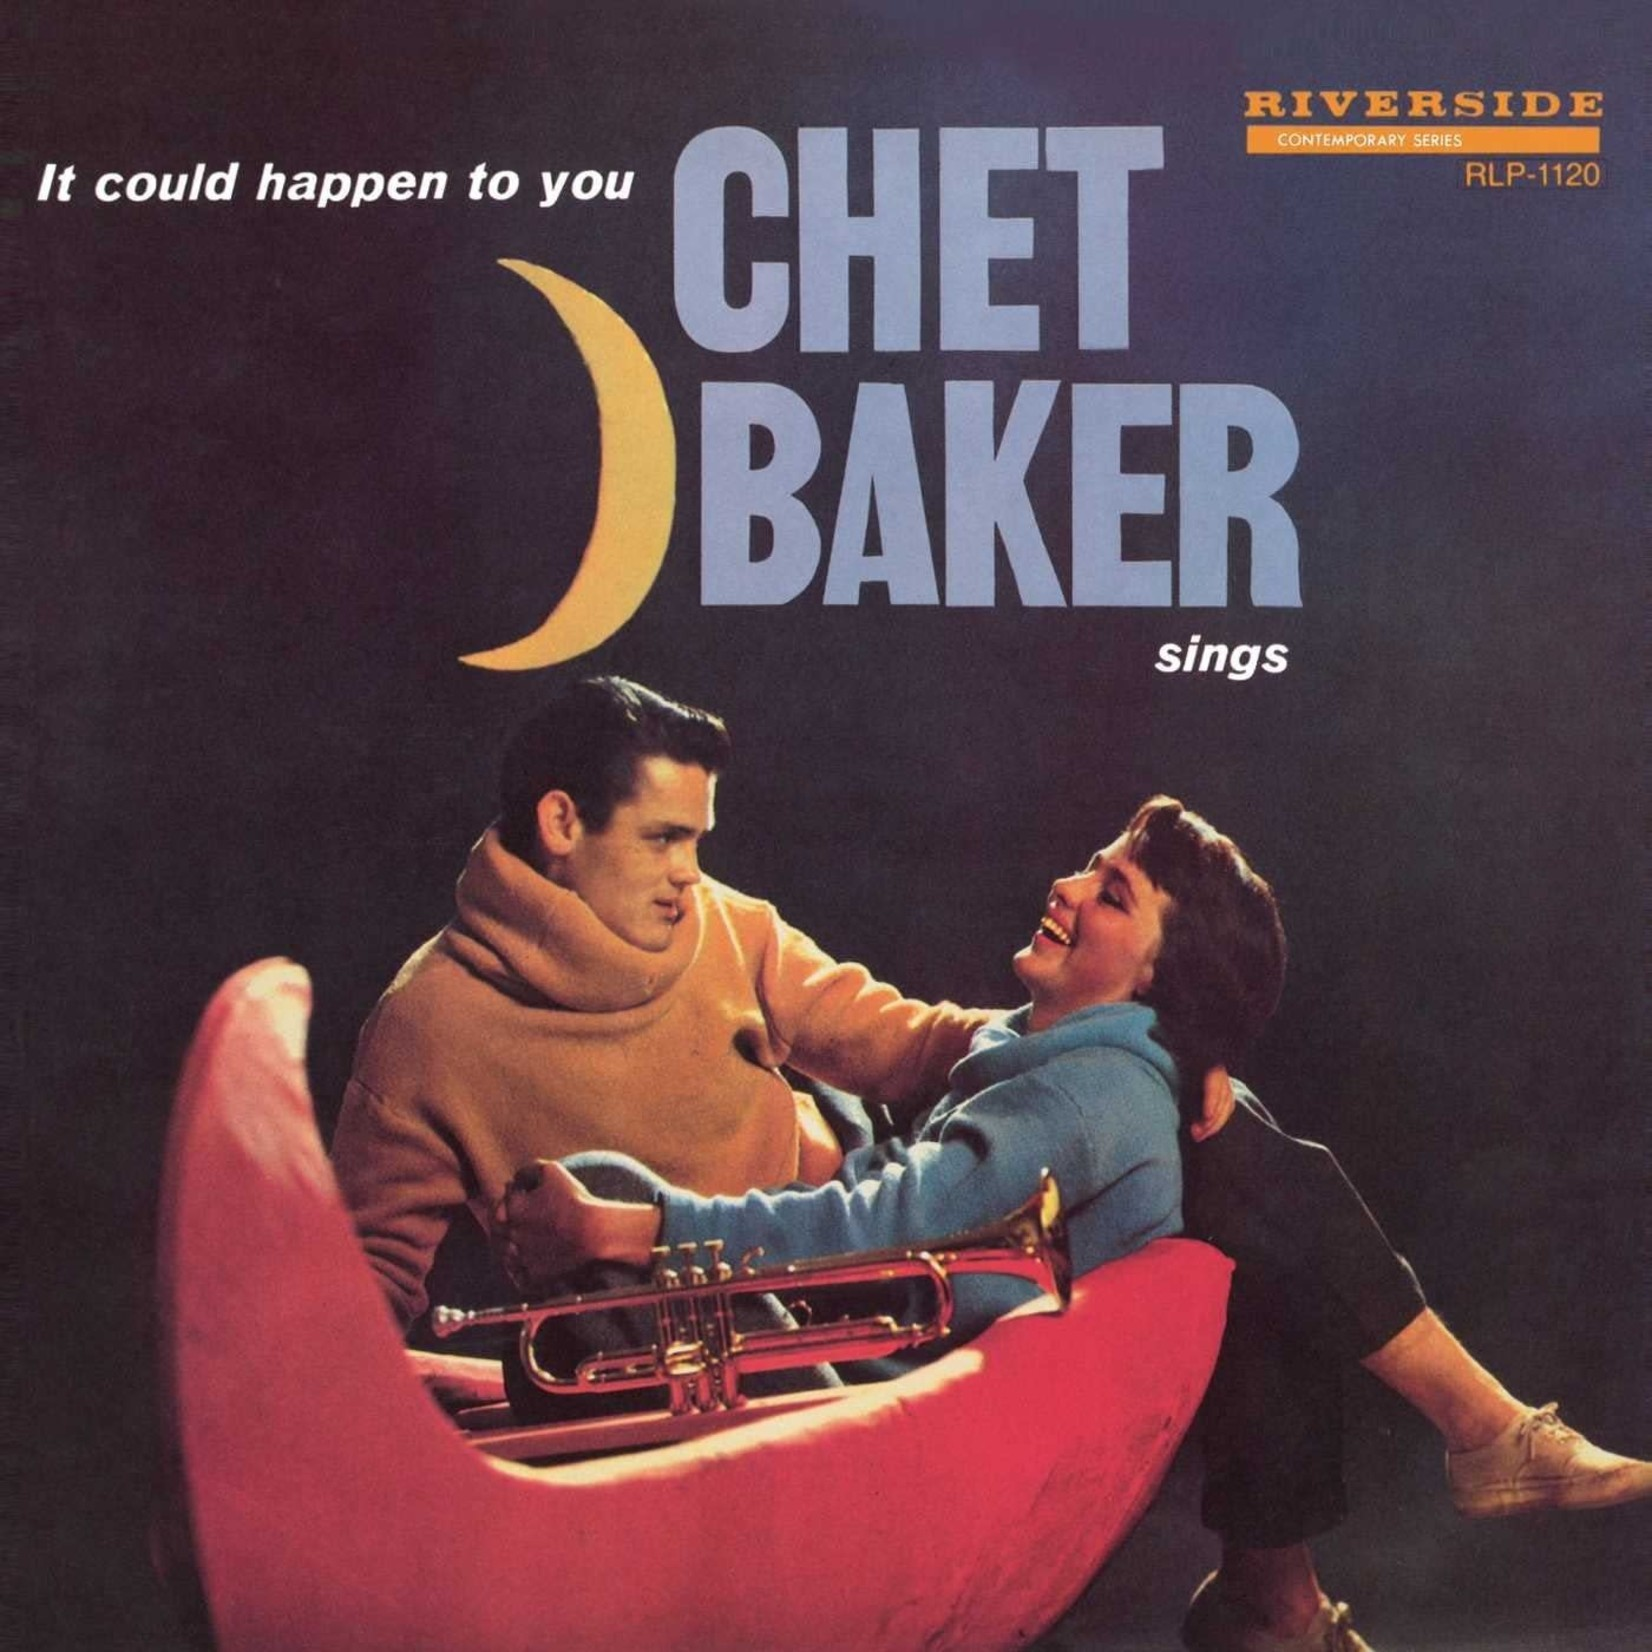 [New] Baker, Chet: It Could Happen To You